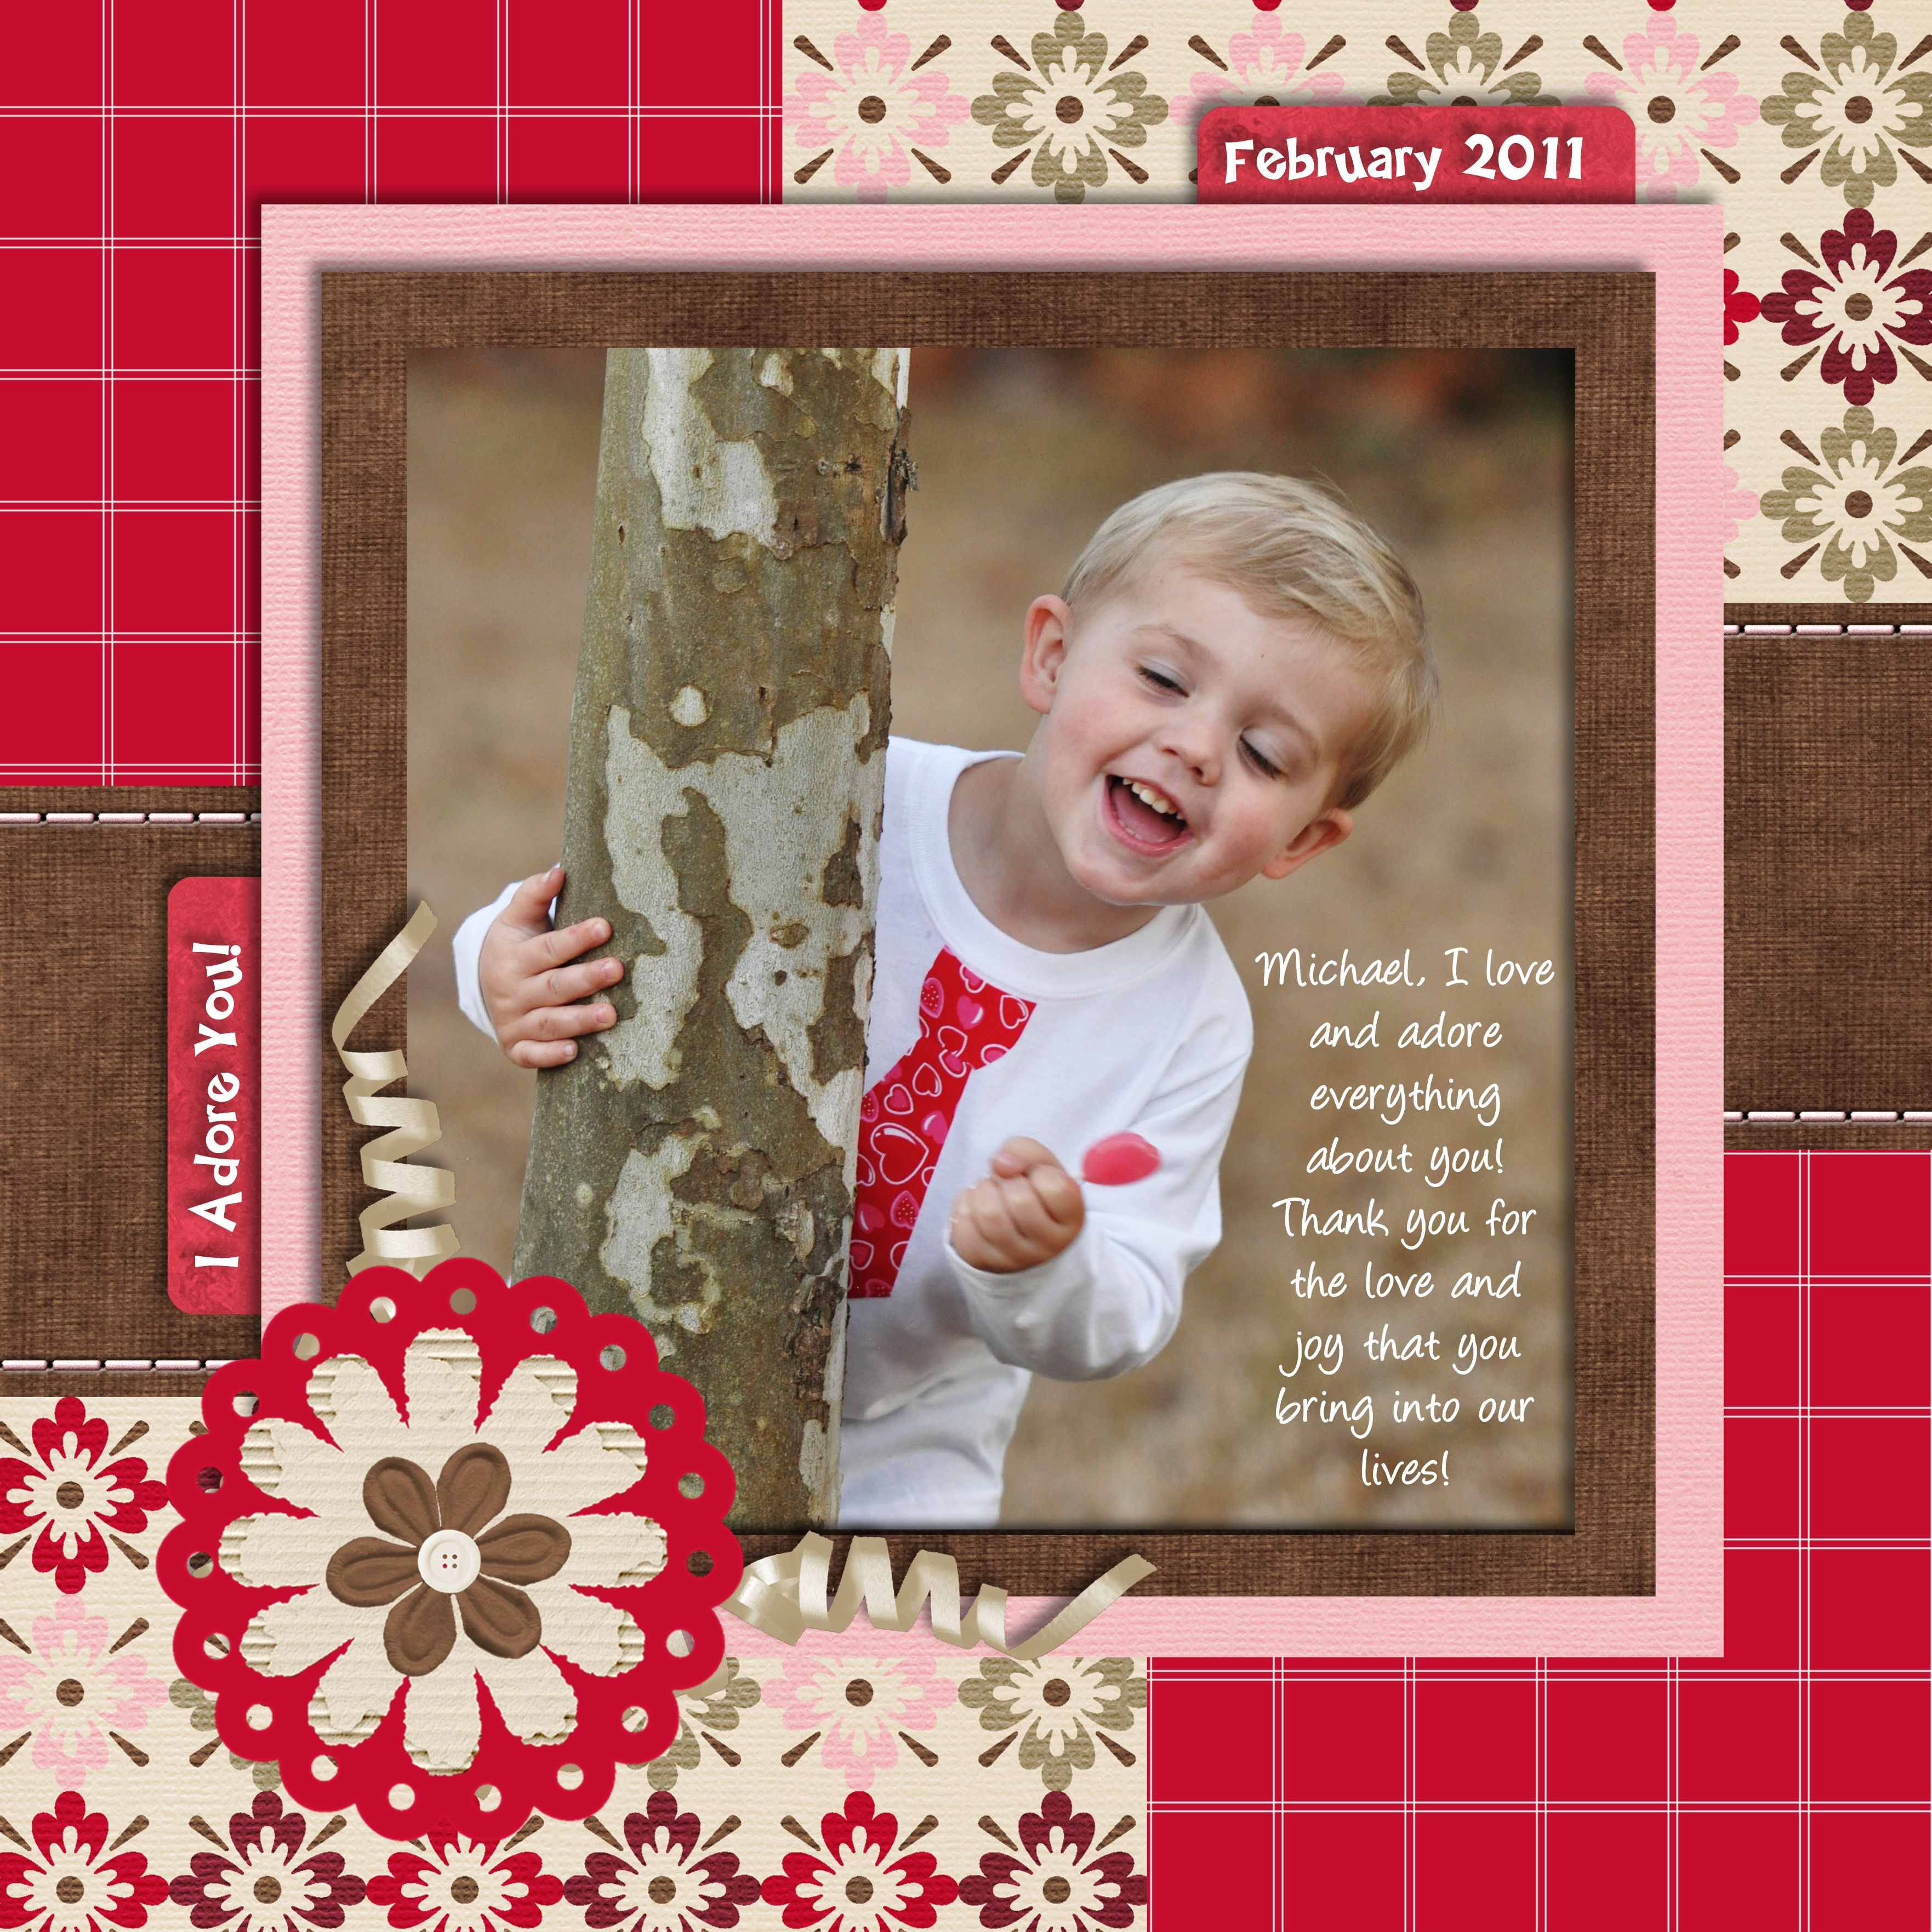 How to scrapbook 8x8 layouts - Boy Scrapbook Layout Page Using Red White Pink And Brown Love The Colors